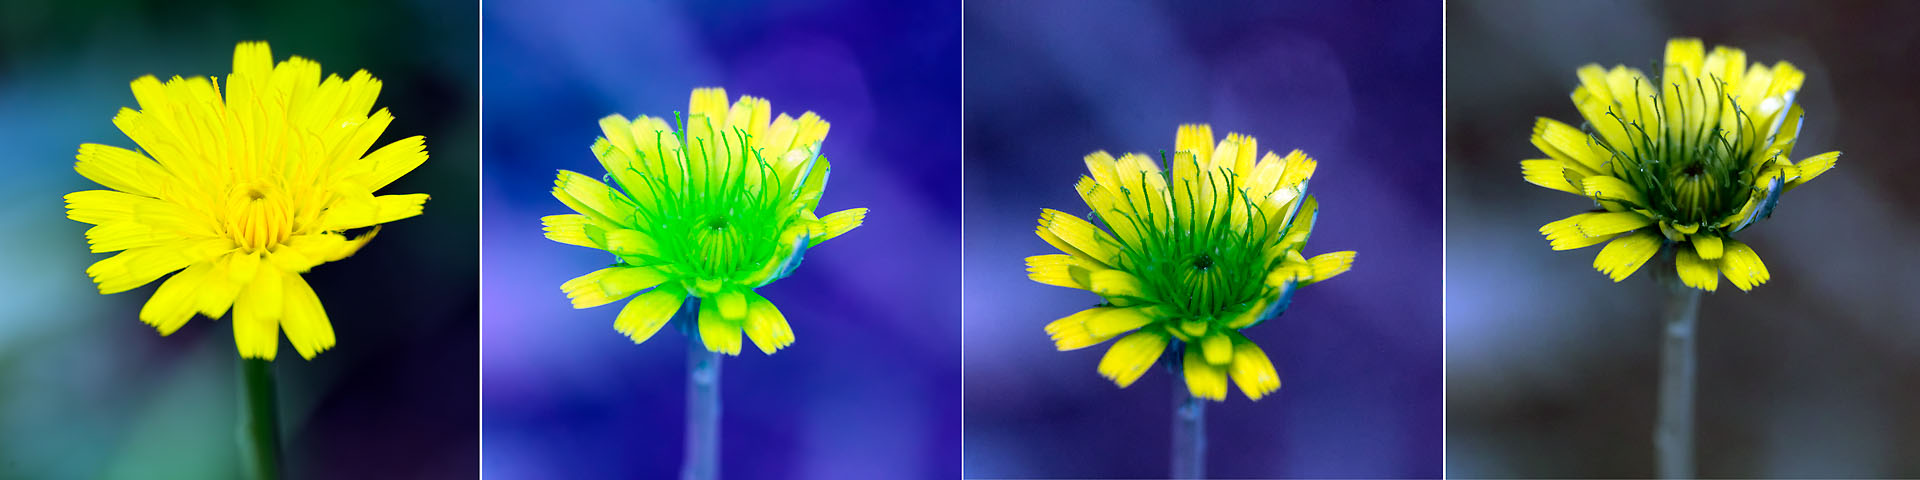 Attached Image: Small_Yellow_Flower_Visual_BG38_UG5_1mm_1p5mm_2mm_stacks.jpg